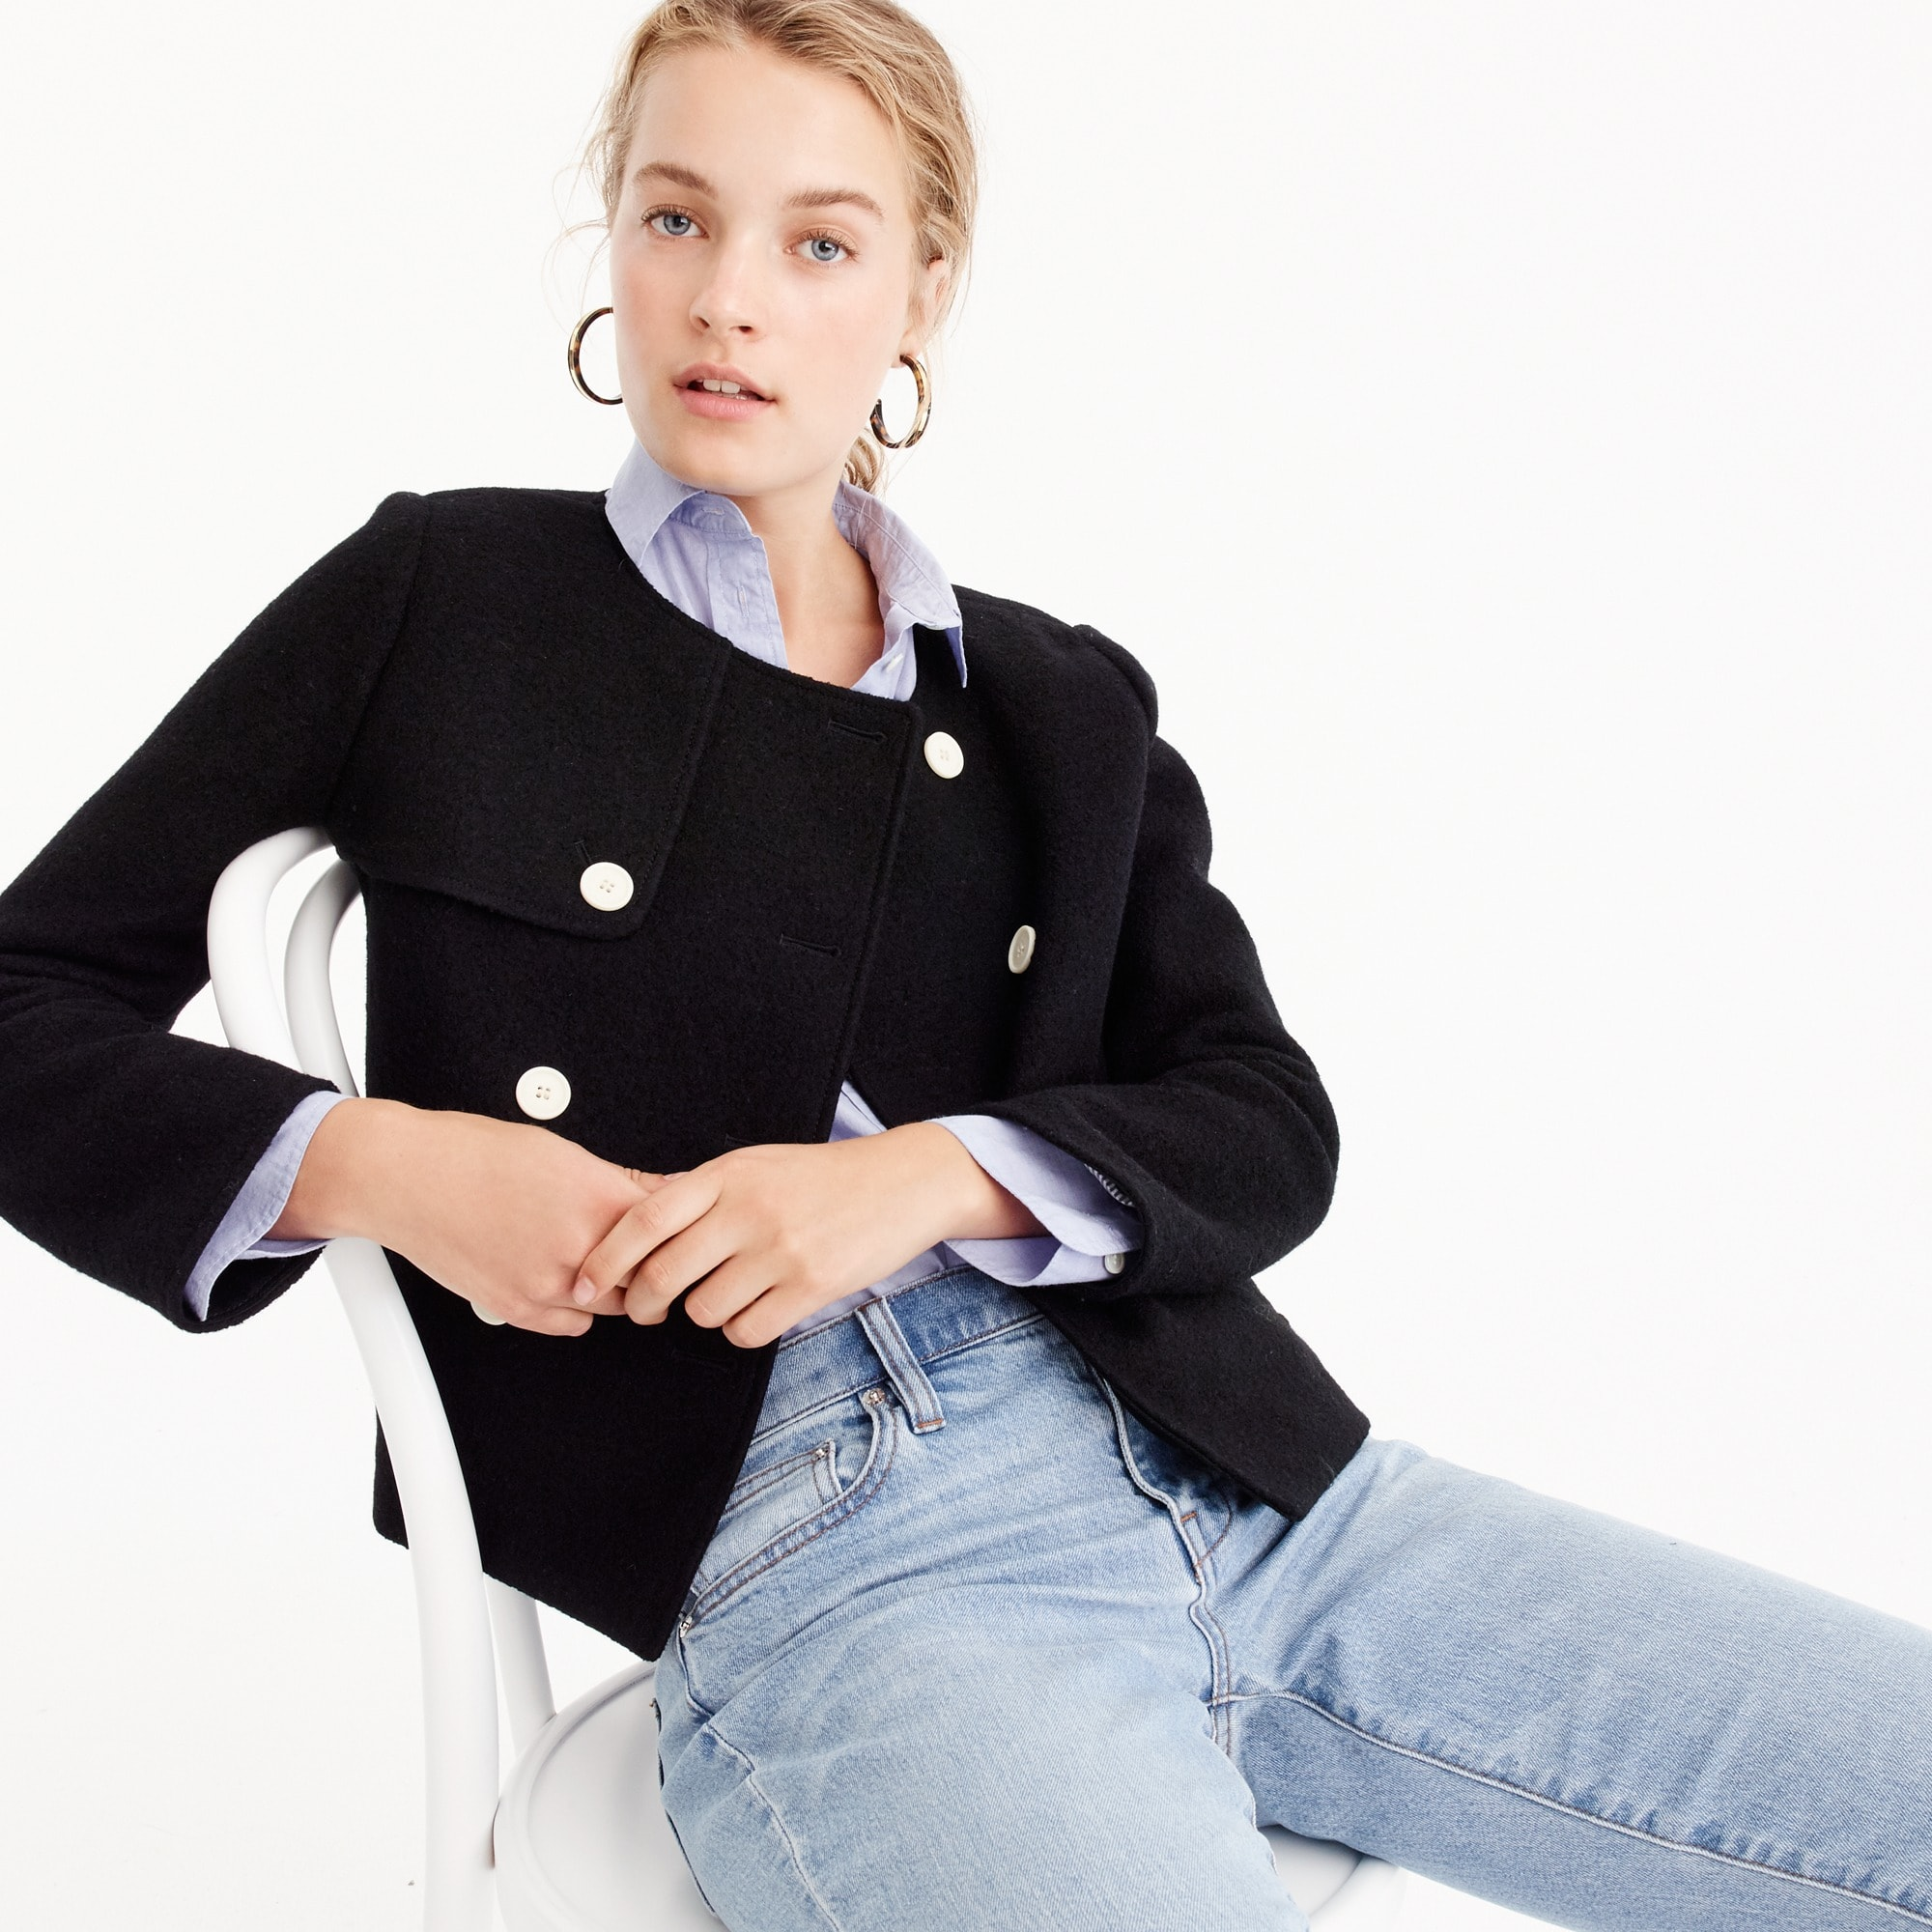 cropped jacket in boiled wool : women wool